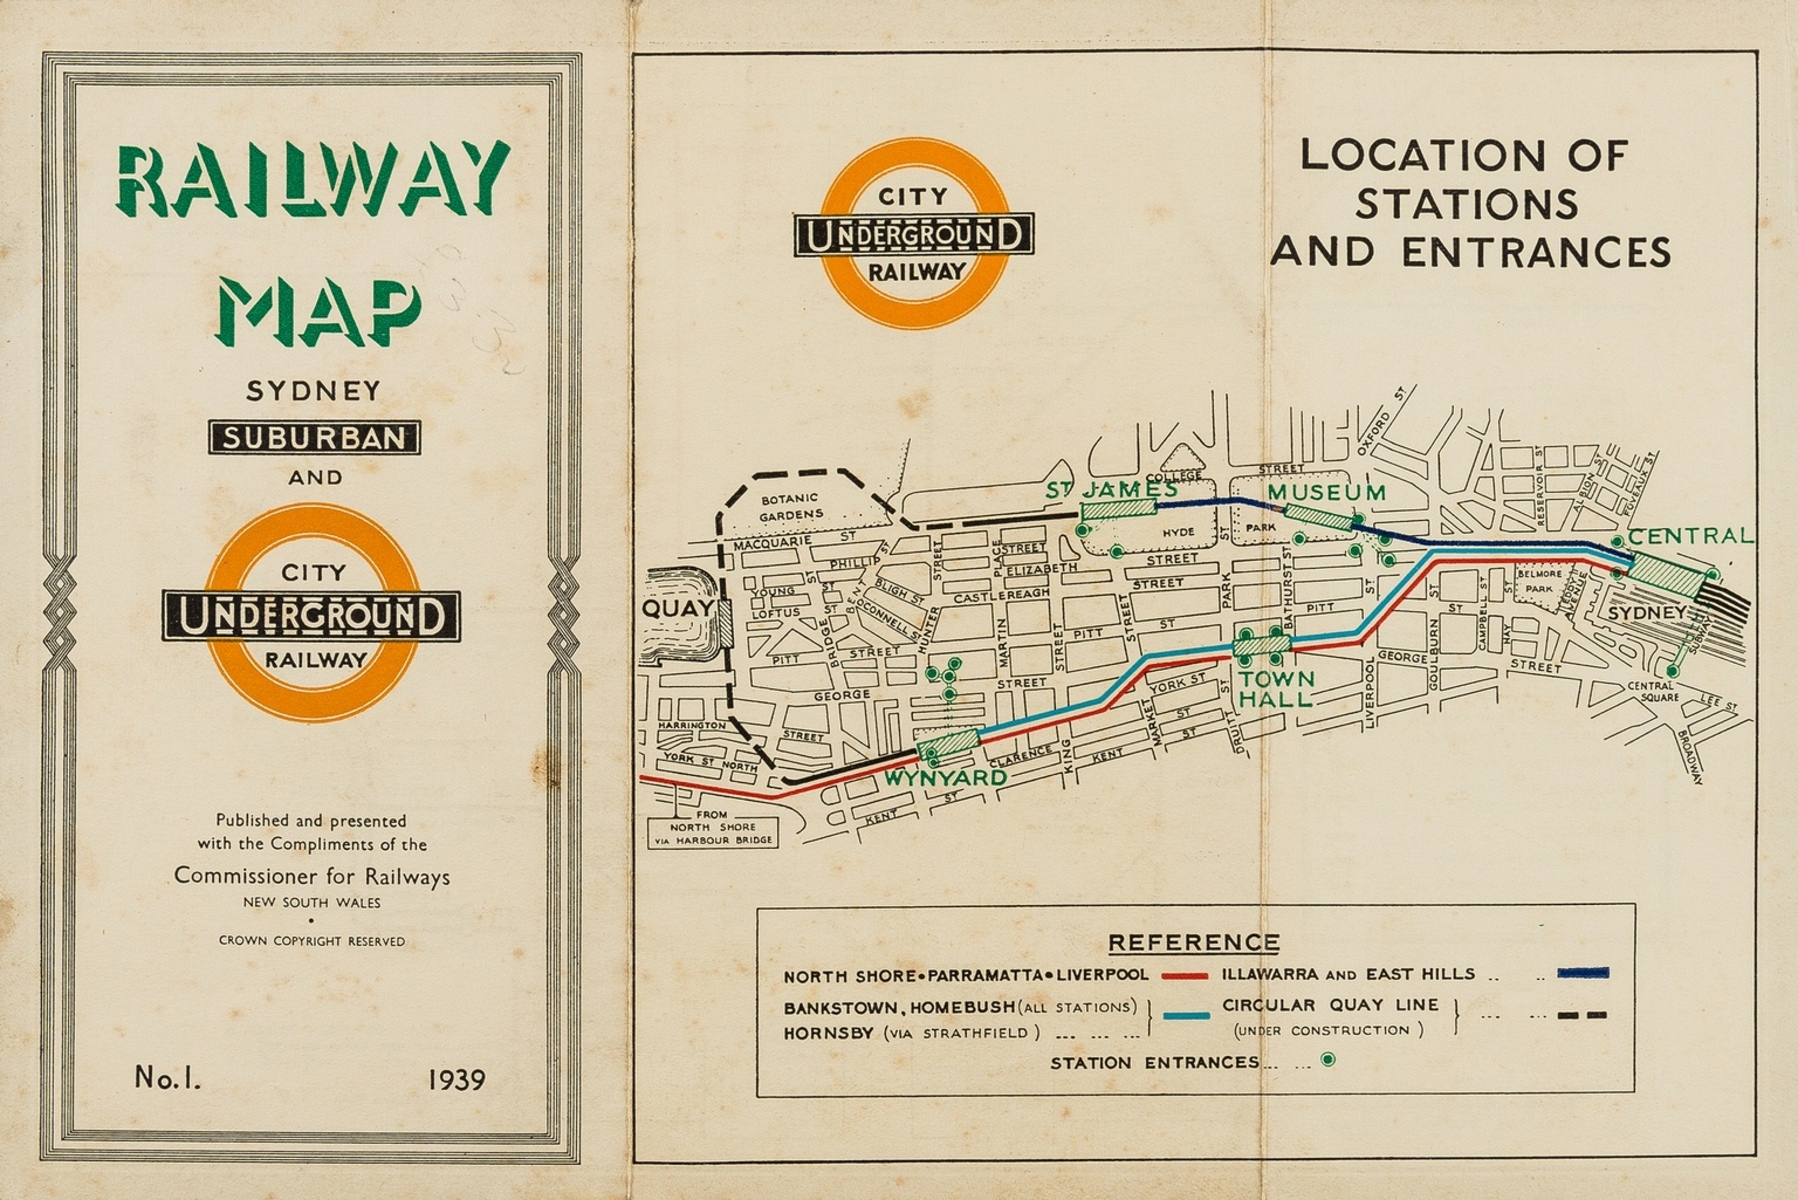 Australia.- Harry Beck London Underground variant.- Commissioner for Railways (New South Wales) … - Image 2 of 2